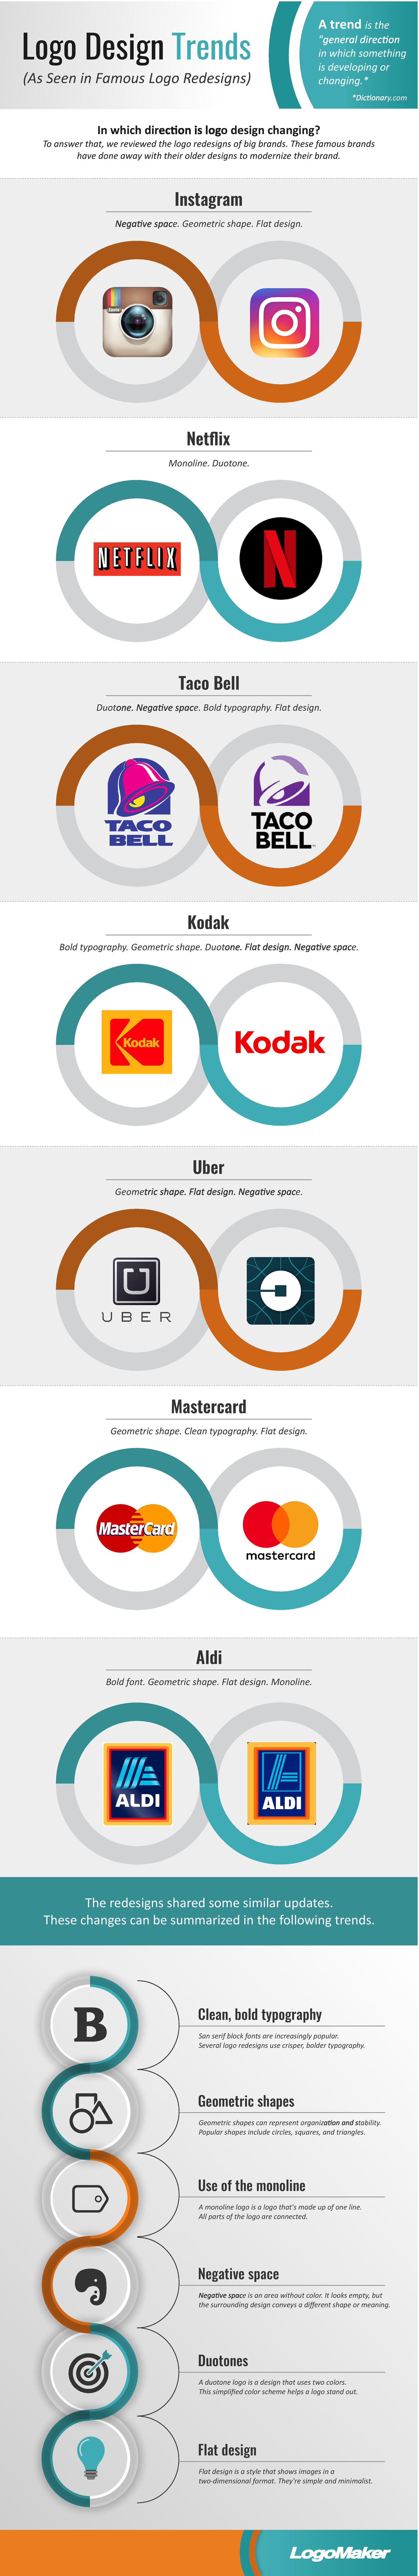 Logo-design-trends-logo-redesign